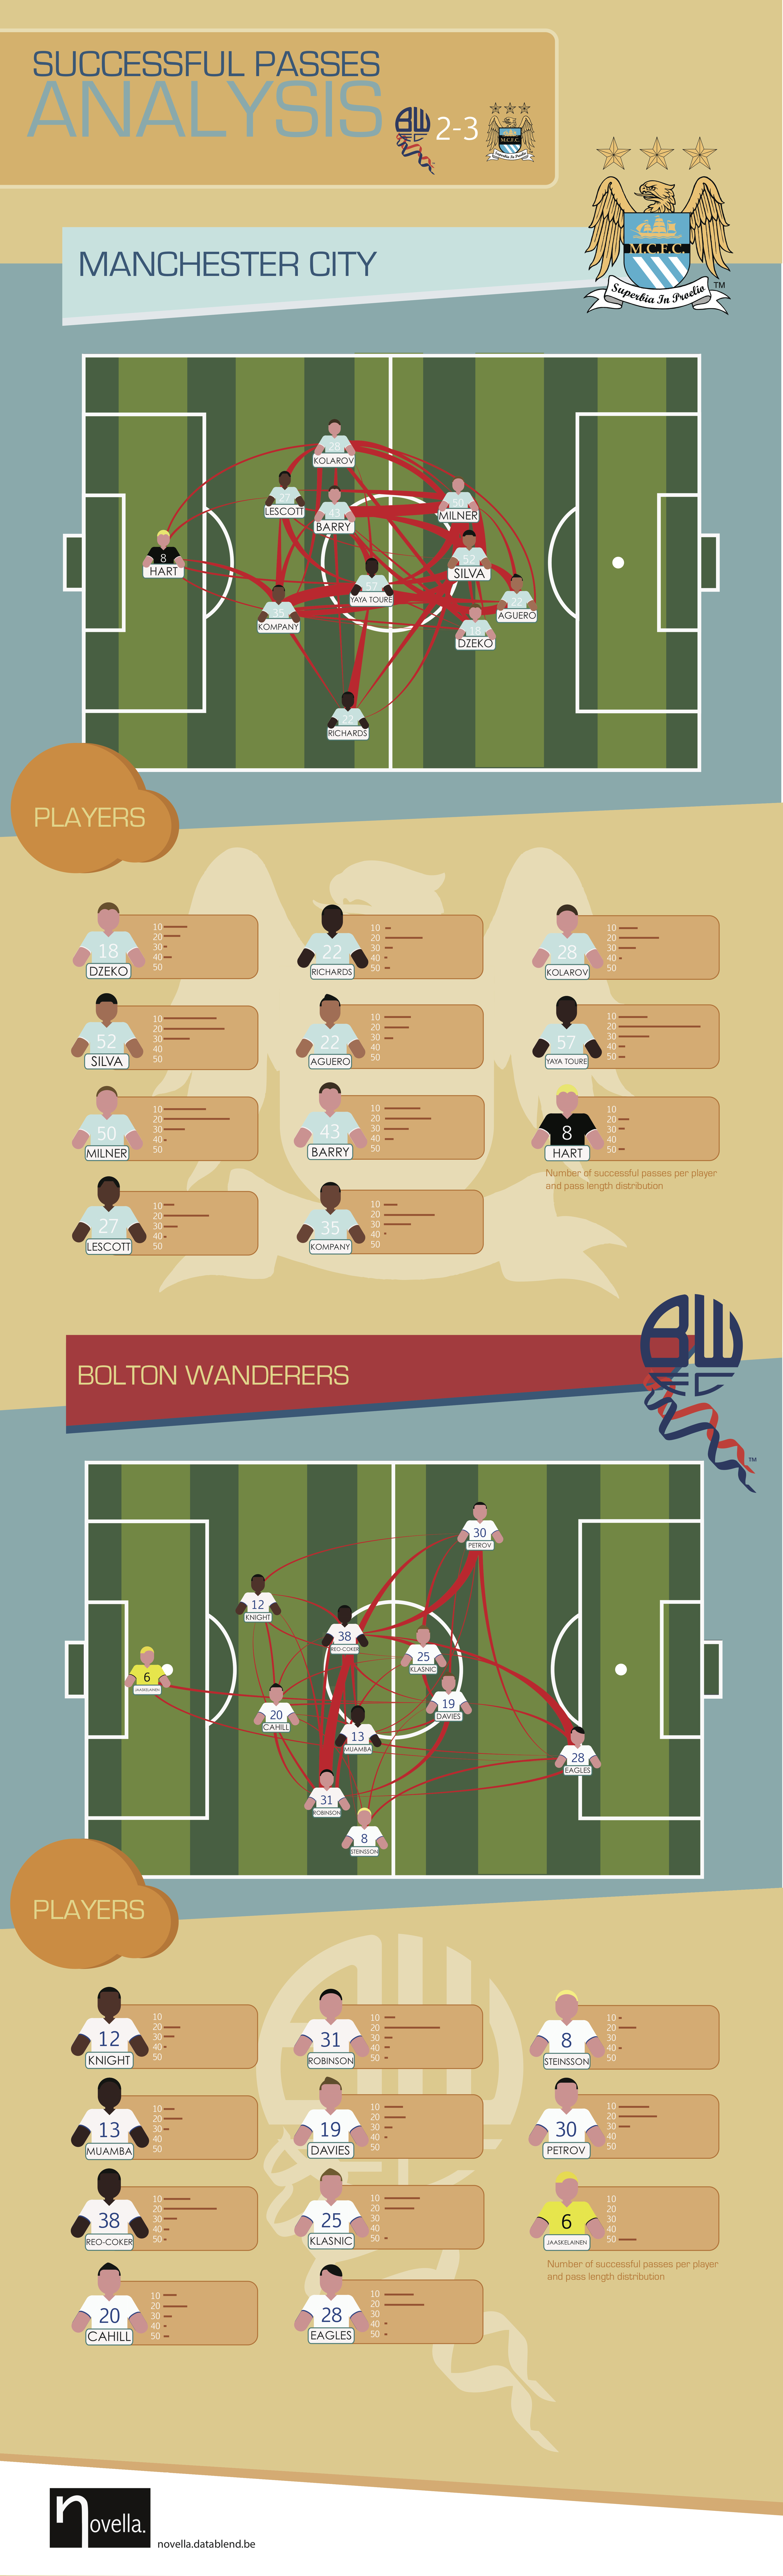 VoetbalInfographic-2